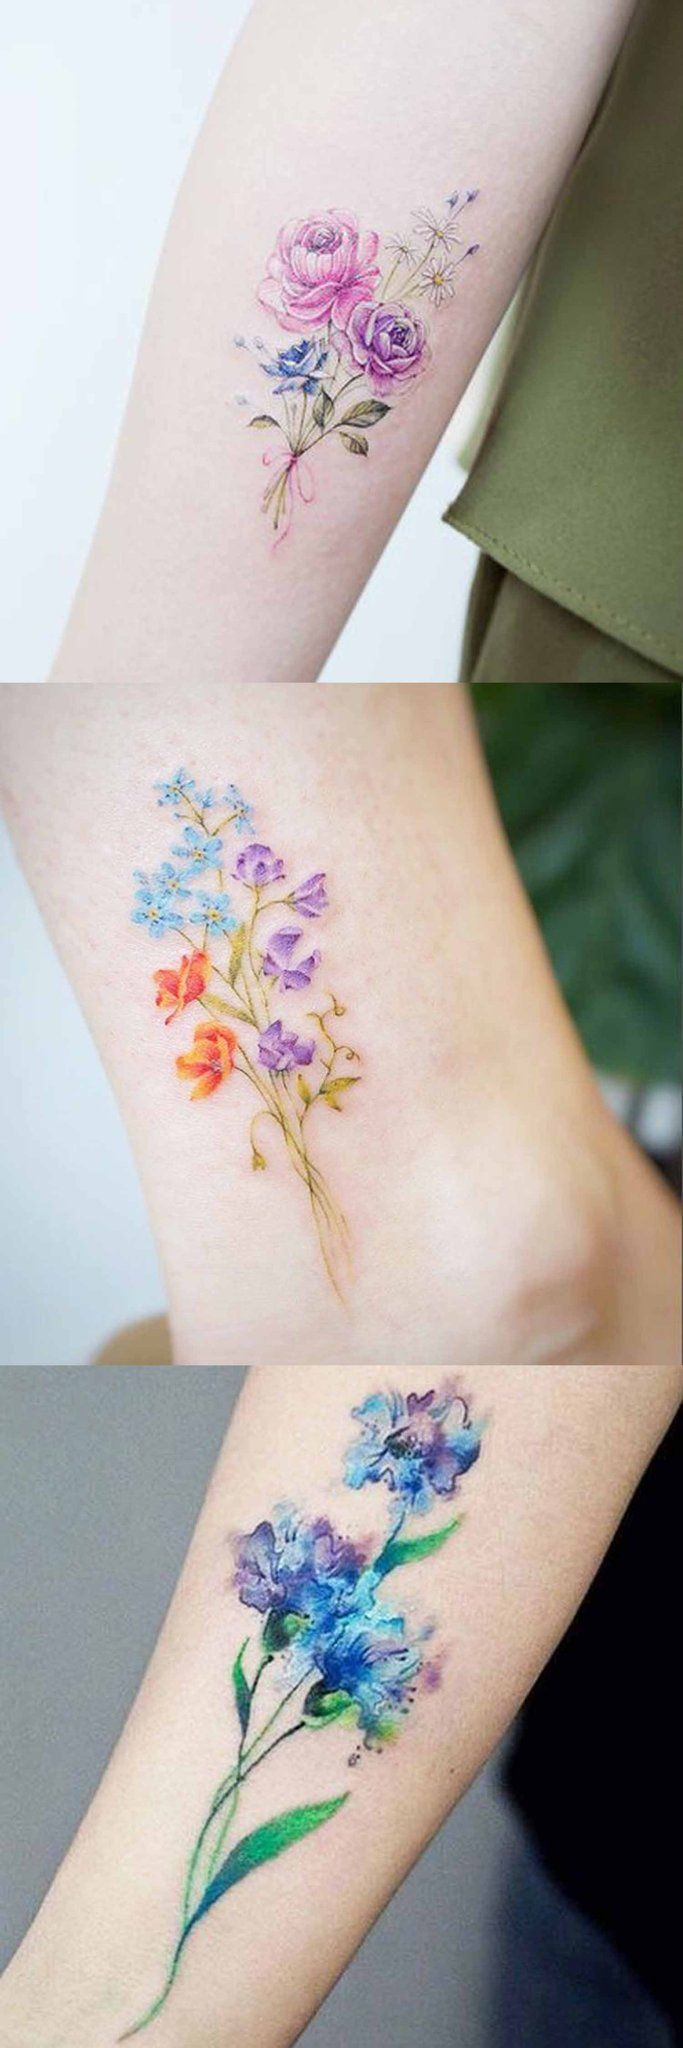 Small Tiny Floral Flower Tattoo Ideas at